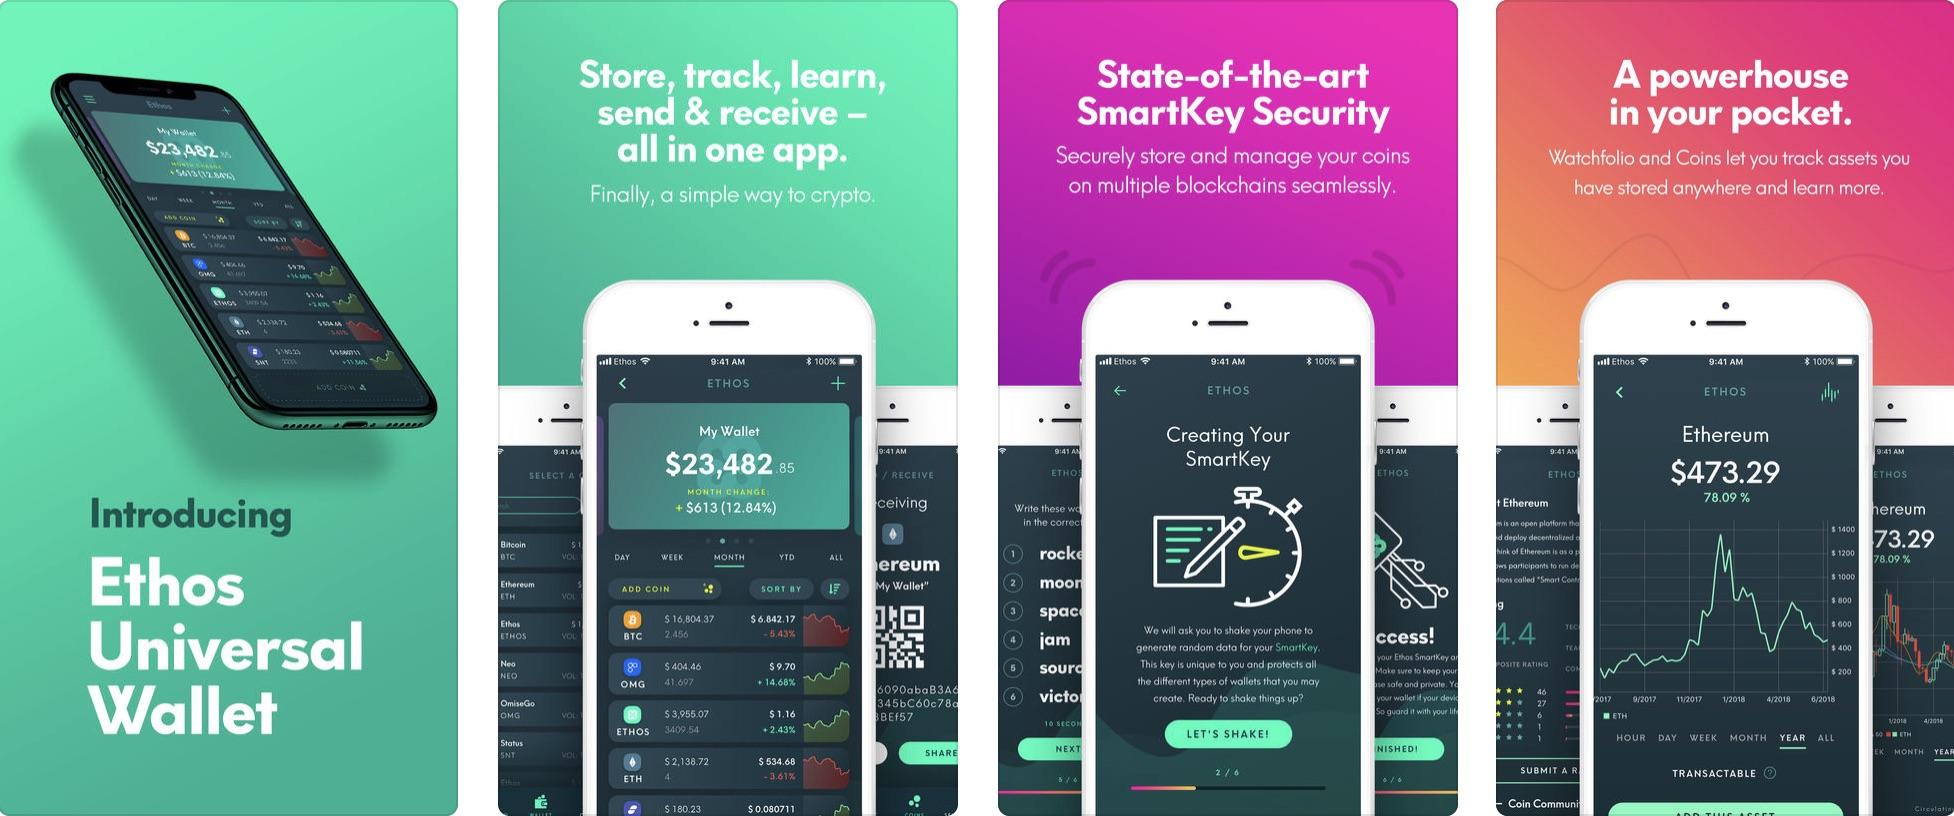 Ethos Universal Wallet Is Now Available Allcrypto